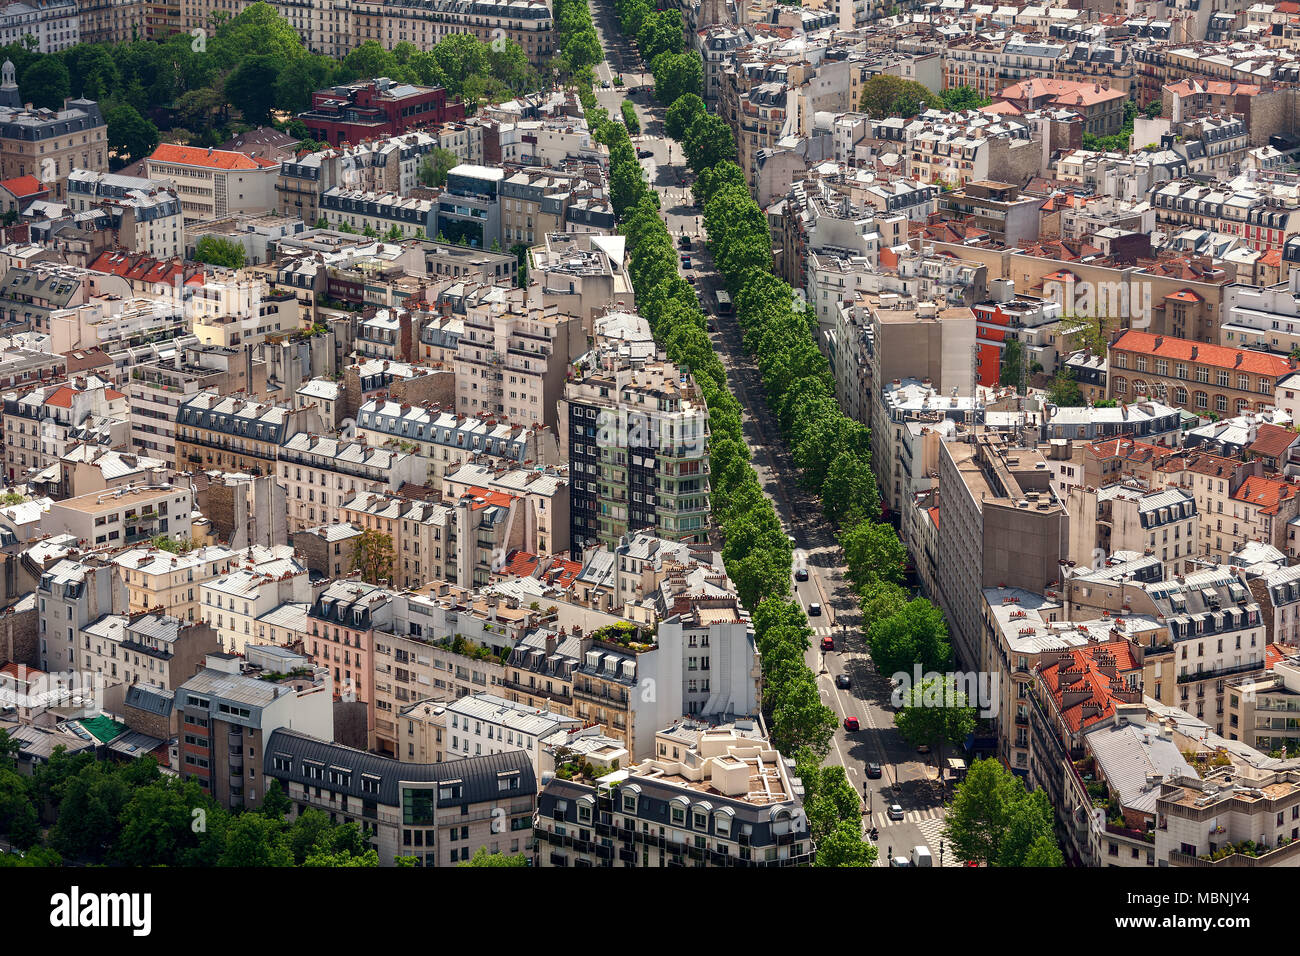 Aerial view of typical Parisian building and boulevard with green trees as seen from Montparnasse Tower in Paris, France . - Stock Image